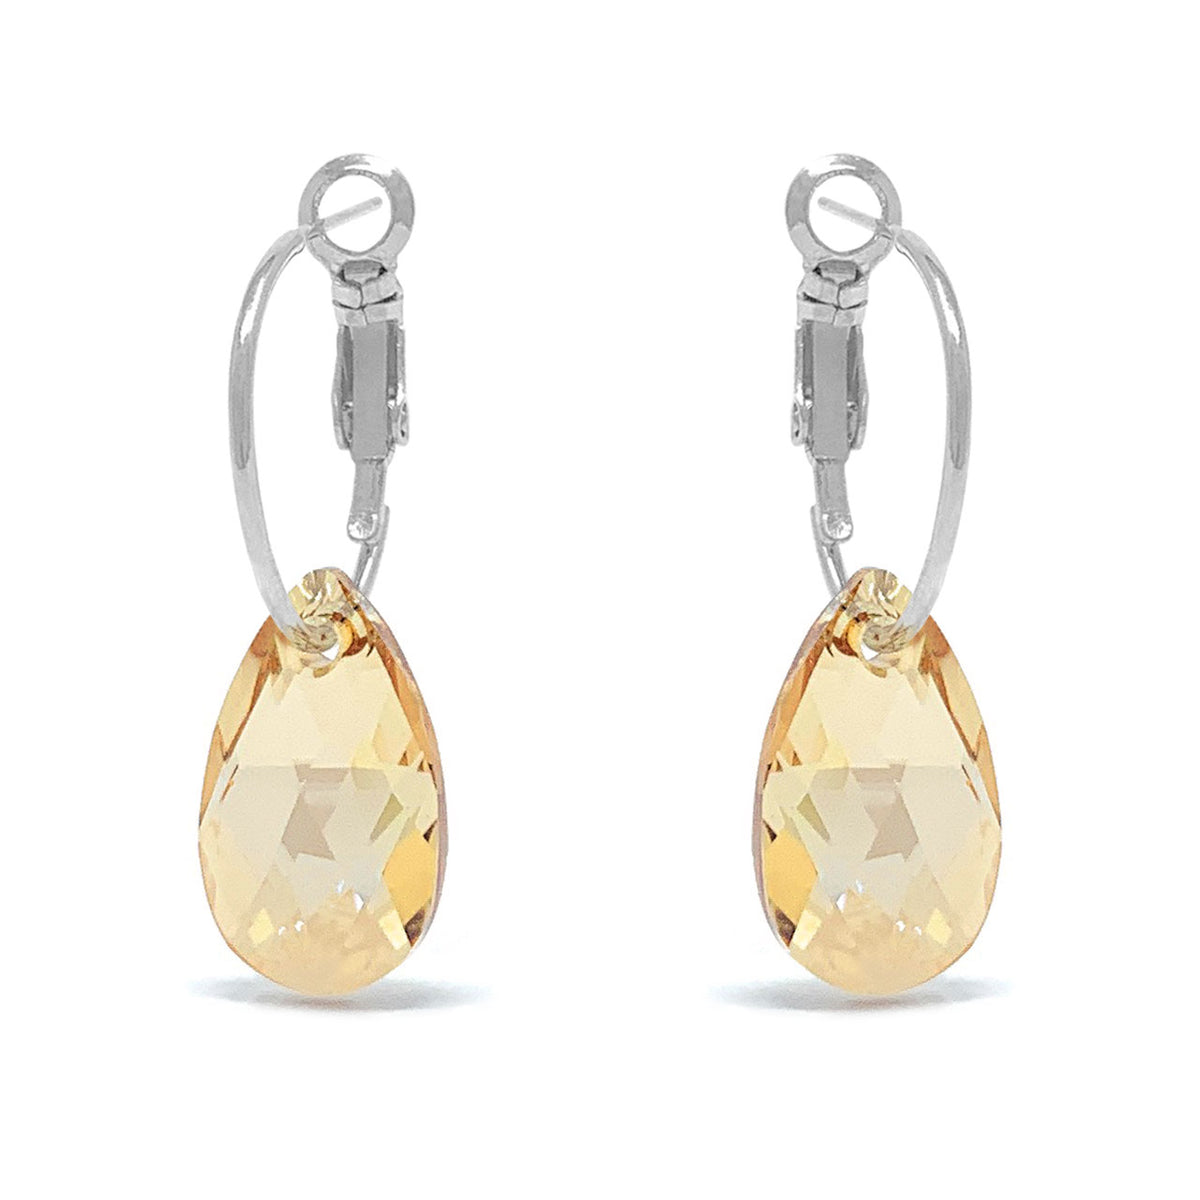 Aurora Small Drop Earrings with Yellow Beige Golden Shadow Pear Crystals from Swarovski Silver Toned Rhodium Plated - Ed Heart